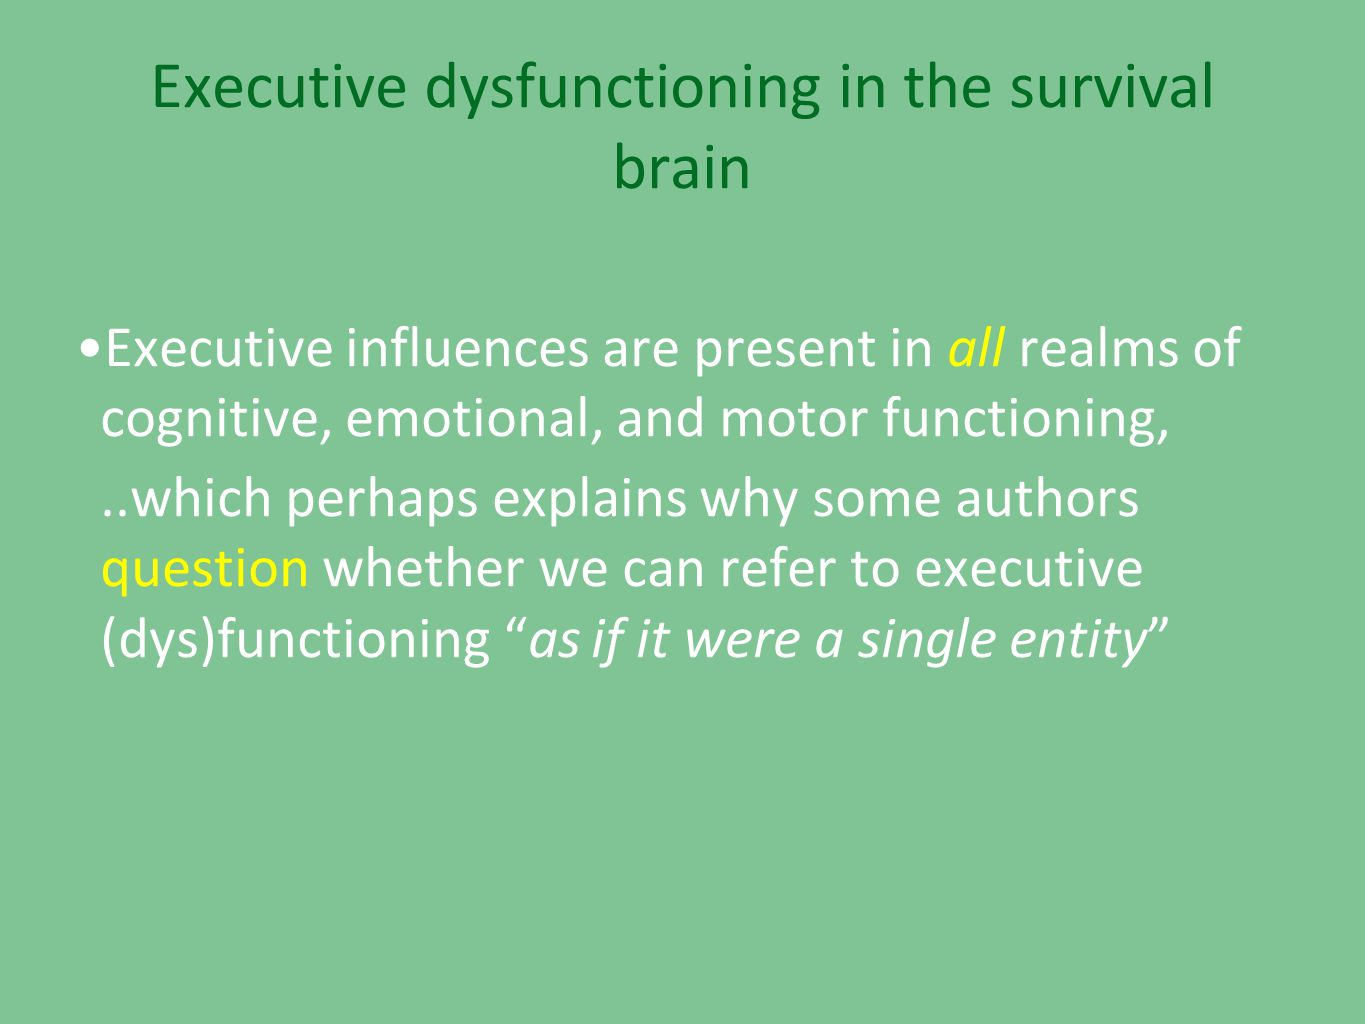 Executive dysfunctioning in the survival brain